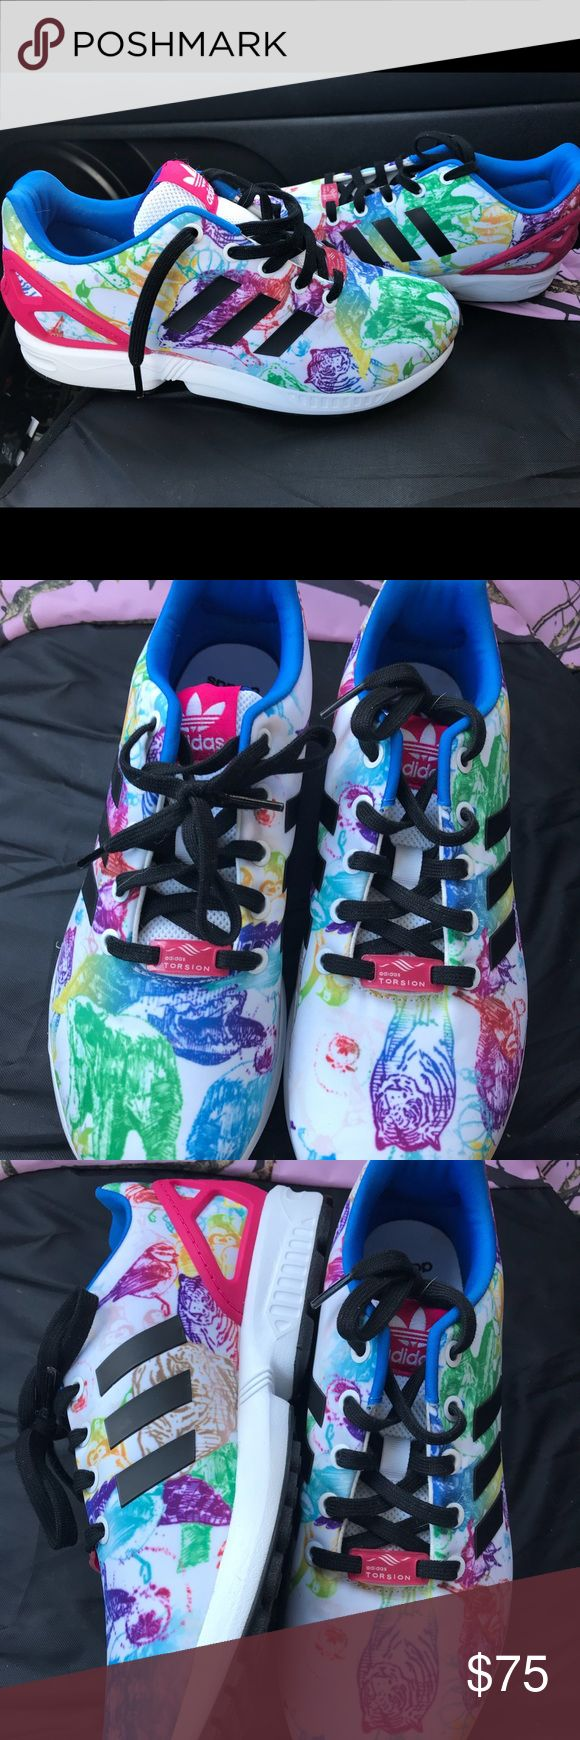 Adidas ZX Flux Torsion size 6 1/2 Worn once bright literal animal print  Has tigers and bears in bright colors adidas Shoes Athletic Shoes